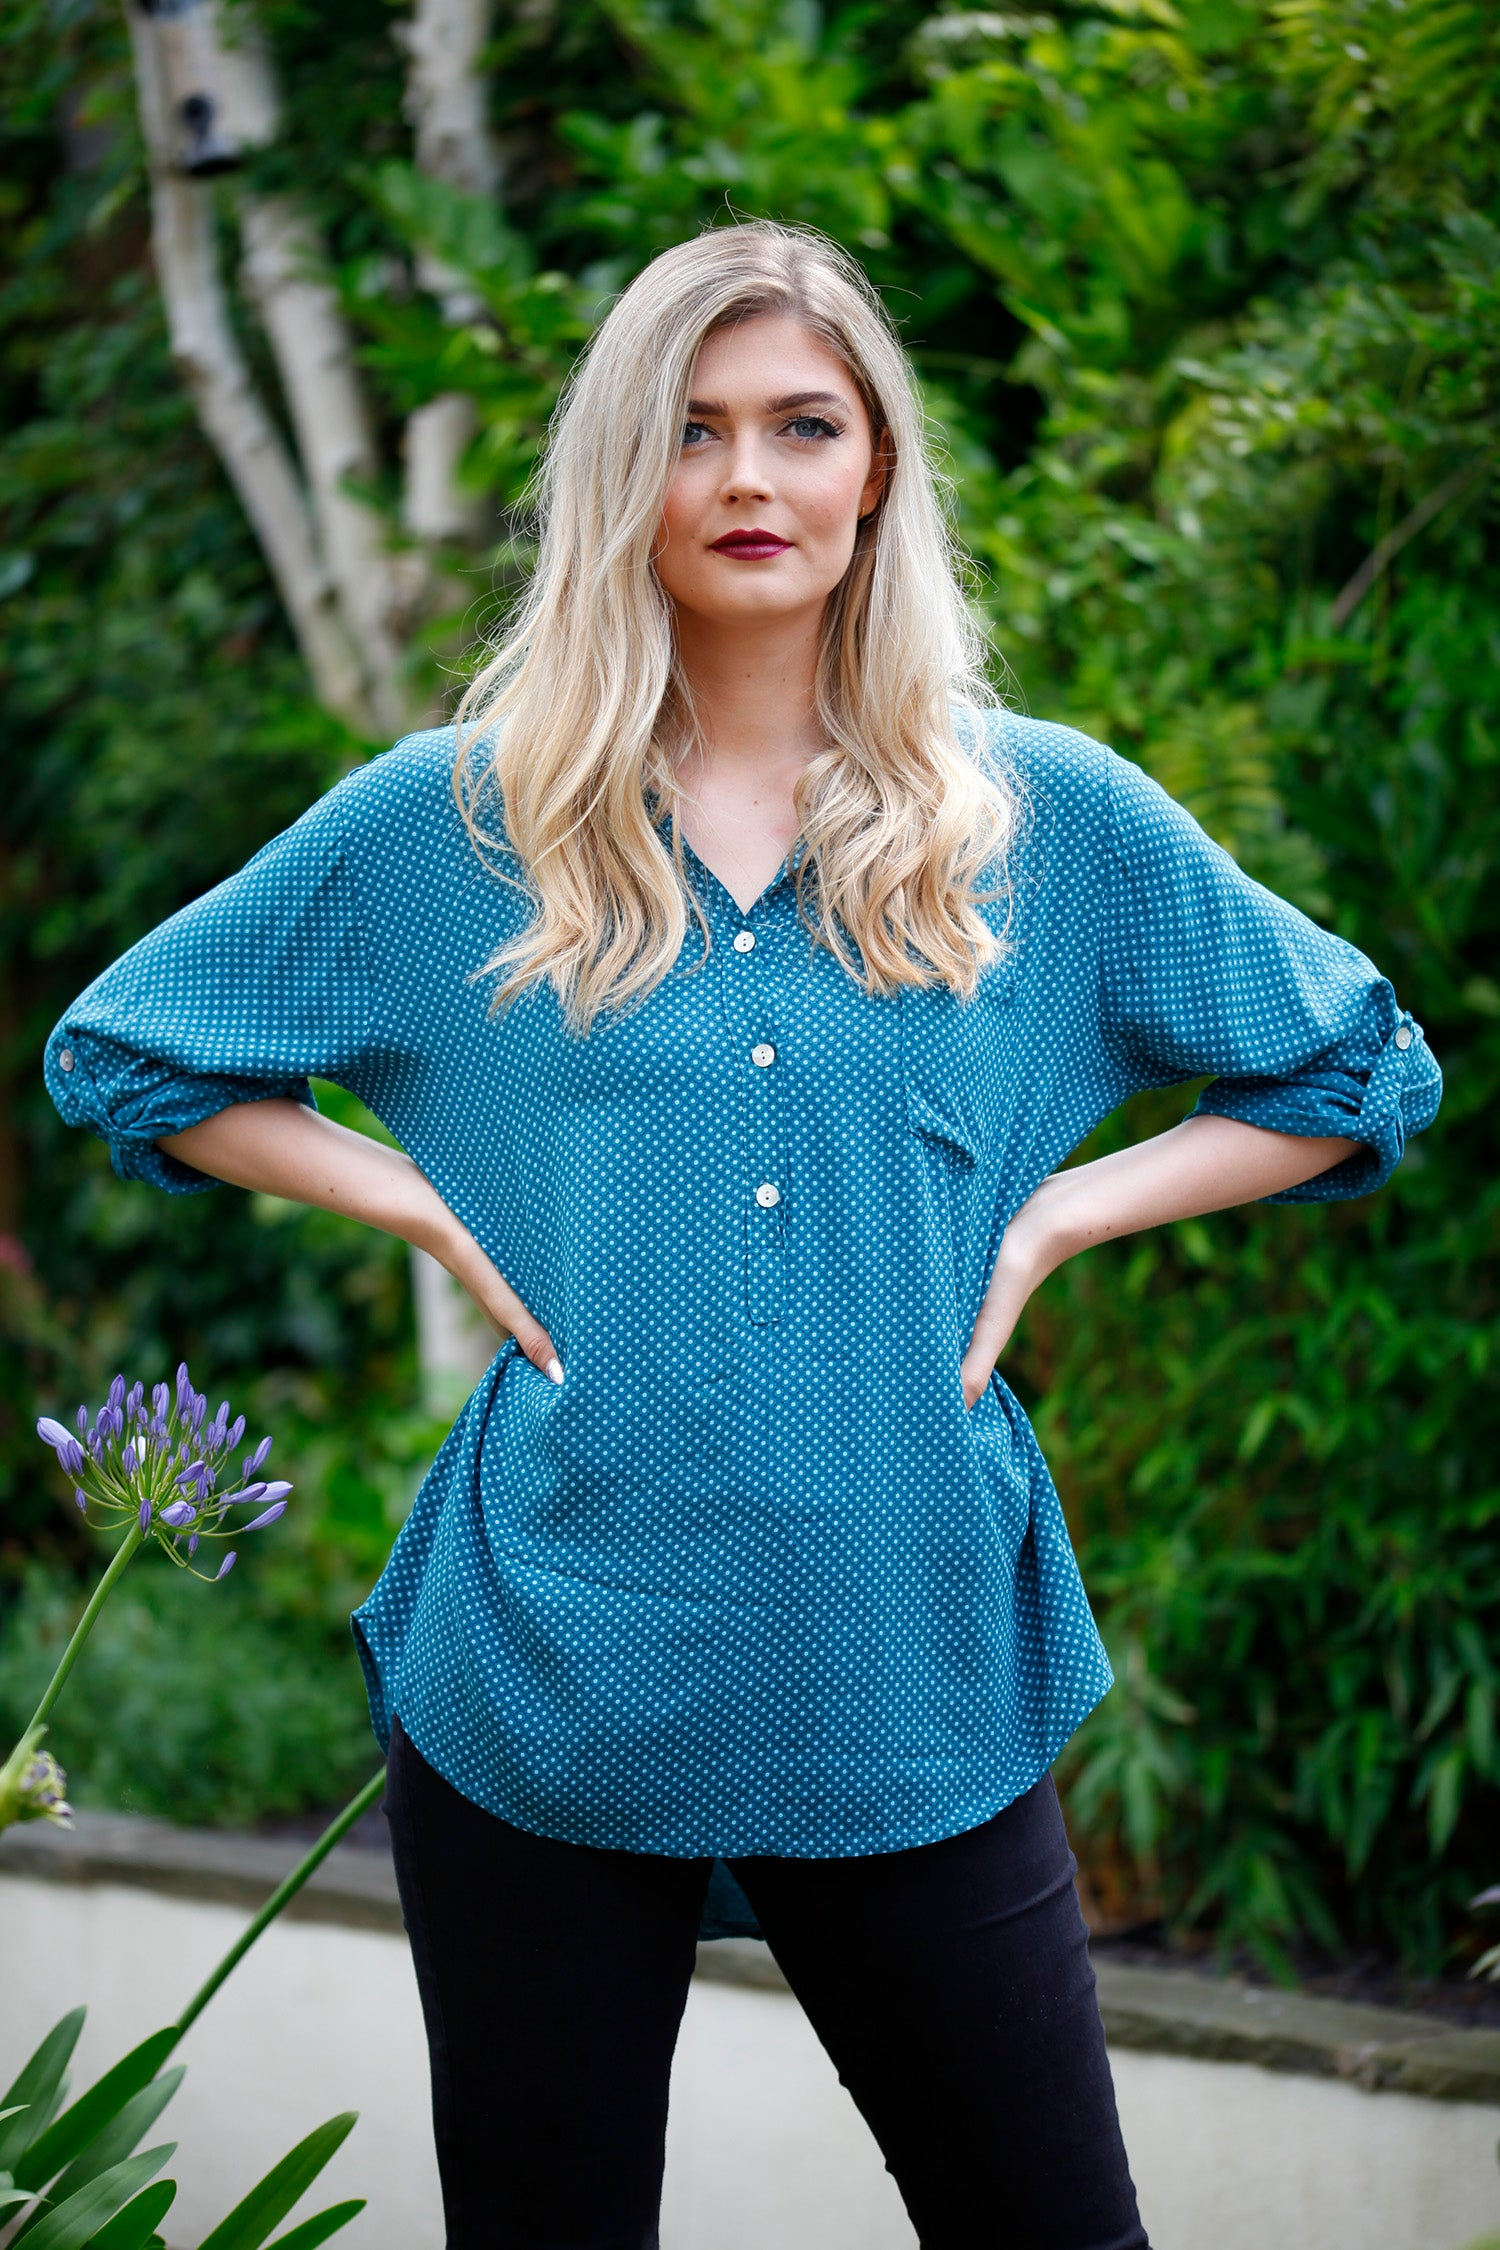 teal polka dot blouse